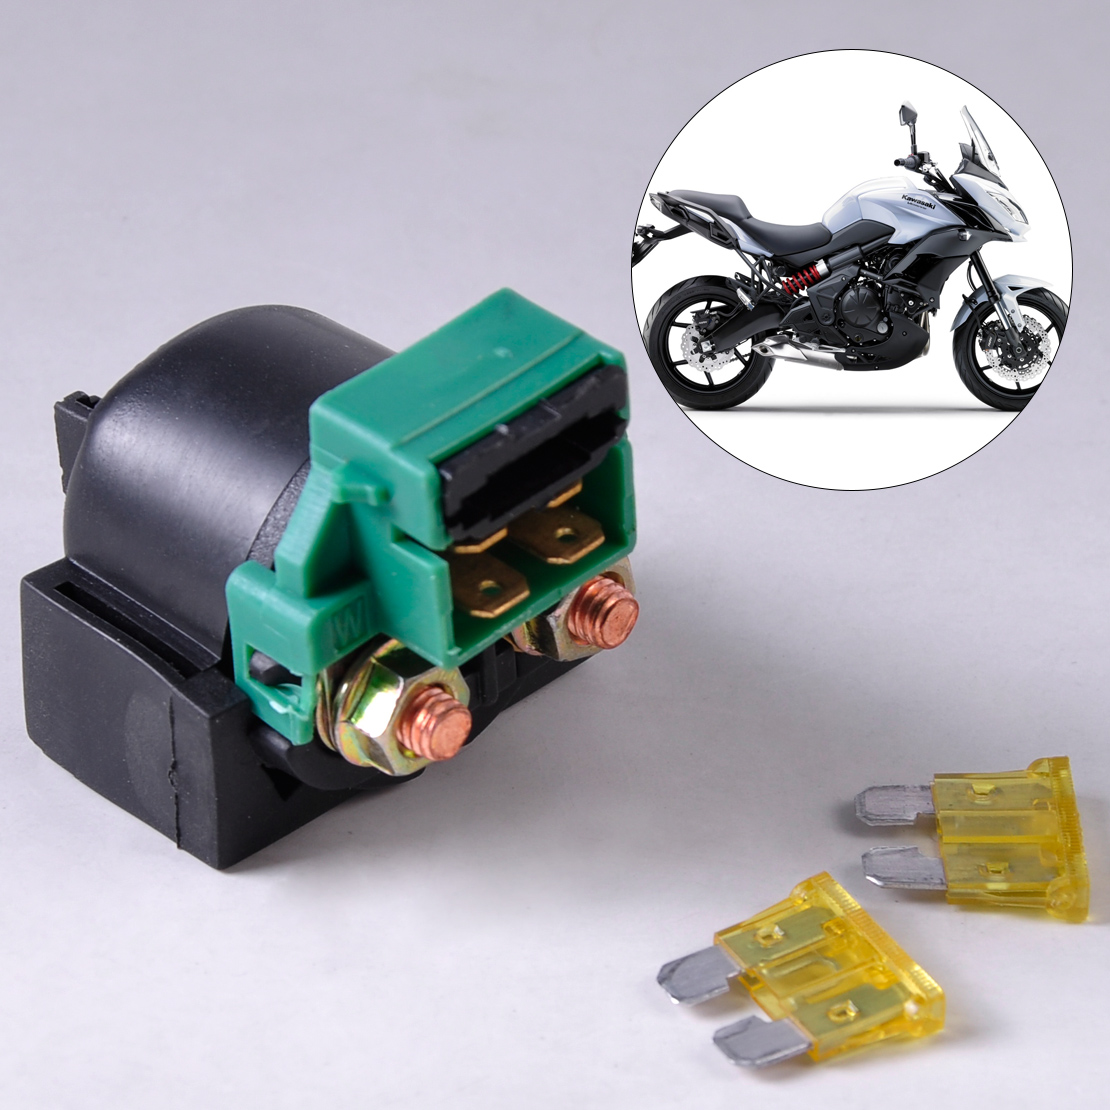 citall 12v dc motorcycle starter relay solenoid for. Black Bedroom Furniture Sets. Home Design Ideas